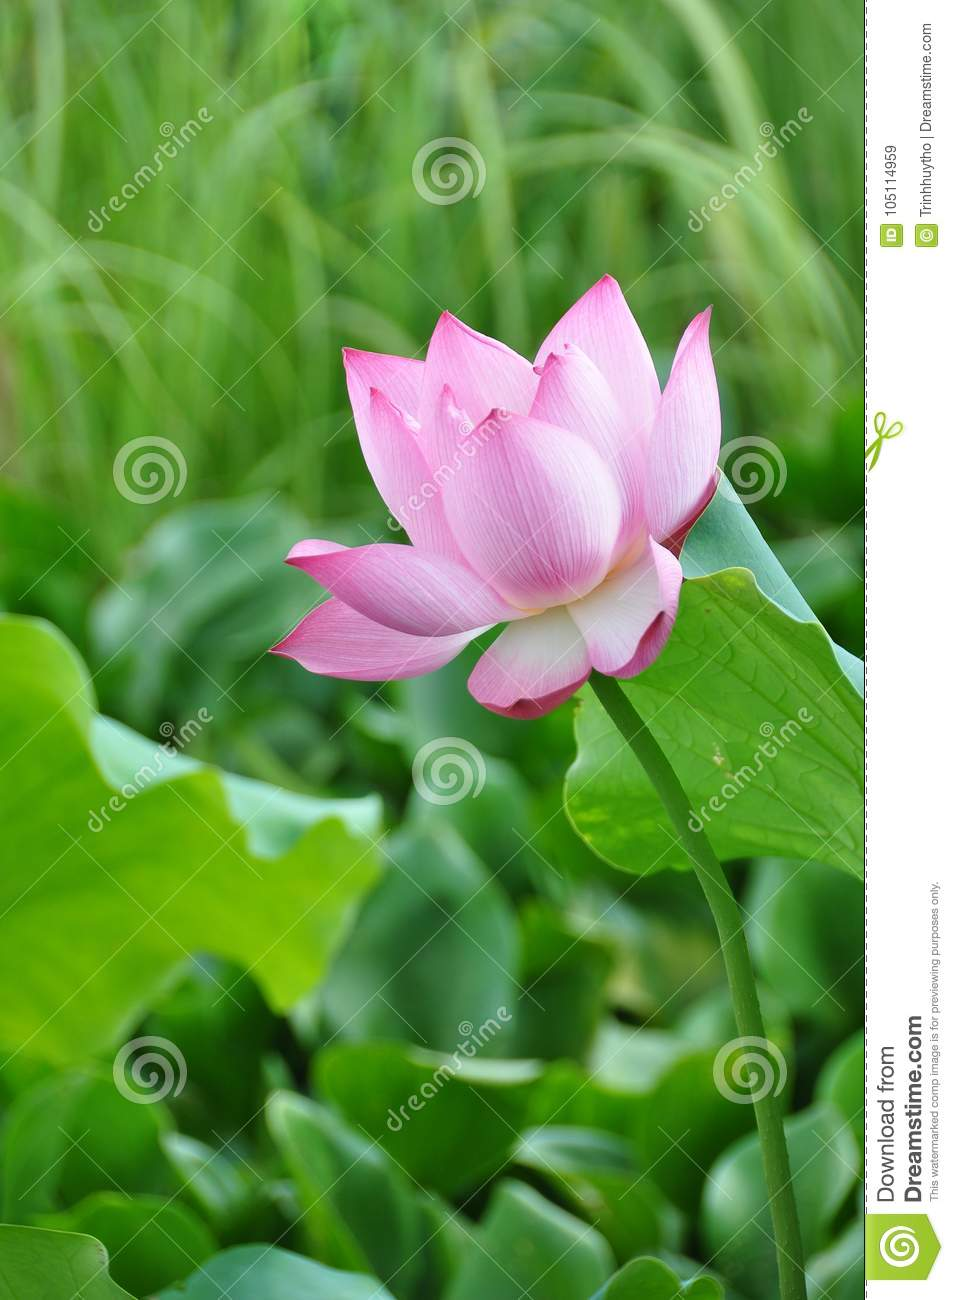 Lotus flower rising from mud to the sunshine stock image image of lotus could have the ability to rise up from the mud bloom out of the darkness and radiate into the sky izmirmasajfo